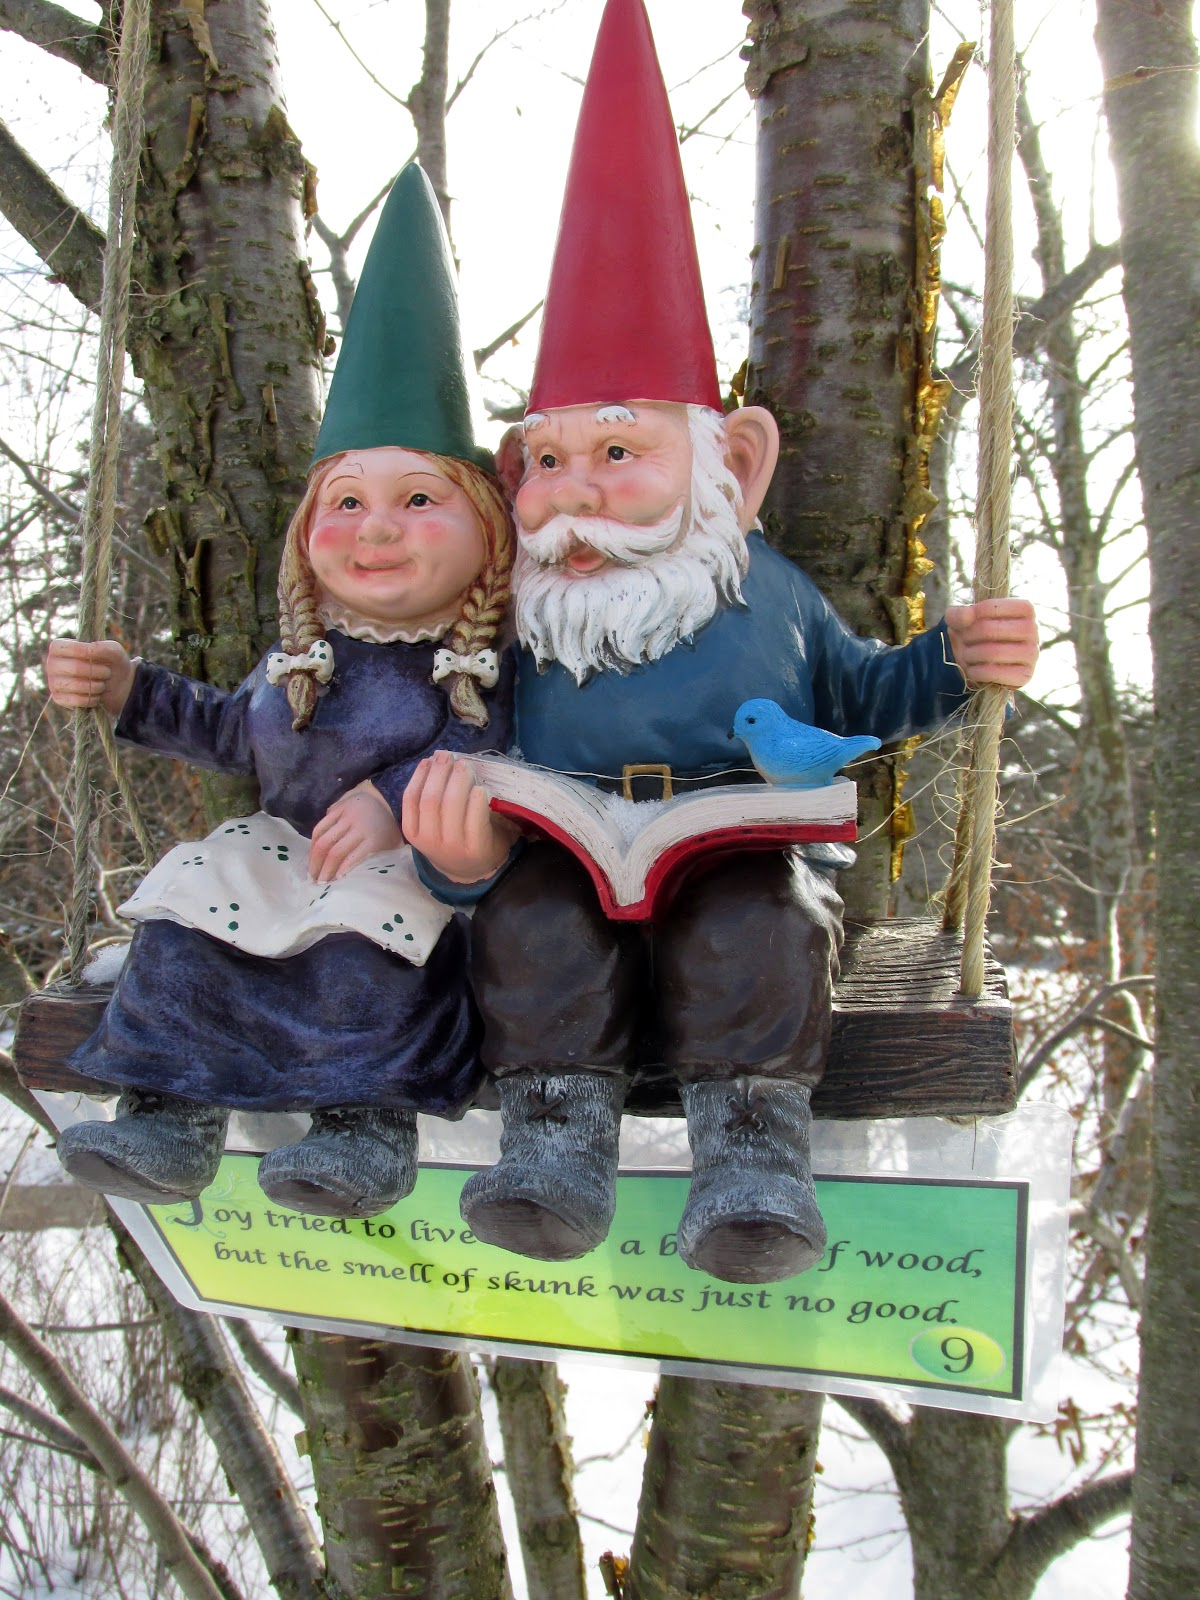 Gnome In Garden: Gnomes, Garden Gnomes And The Gnome